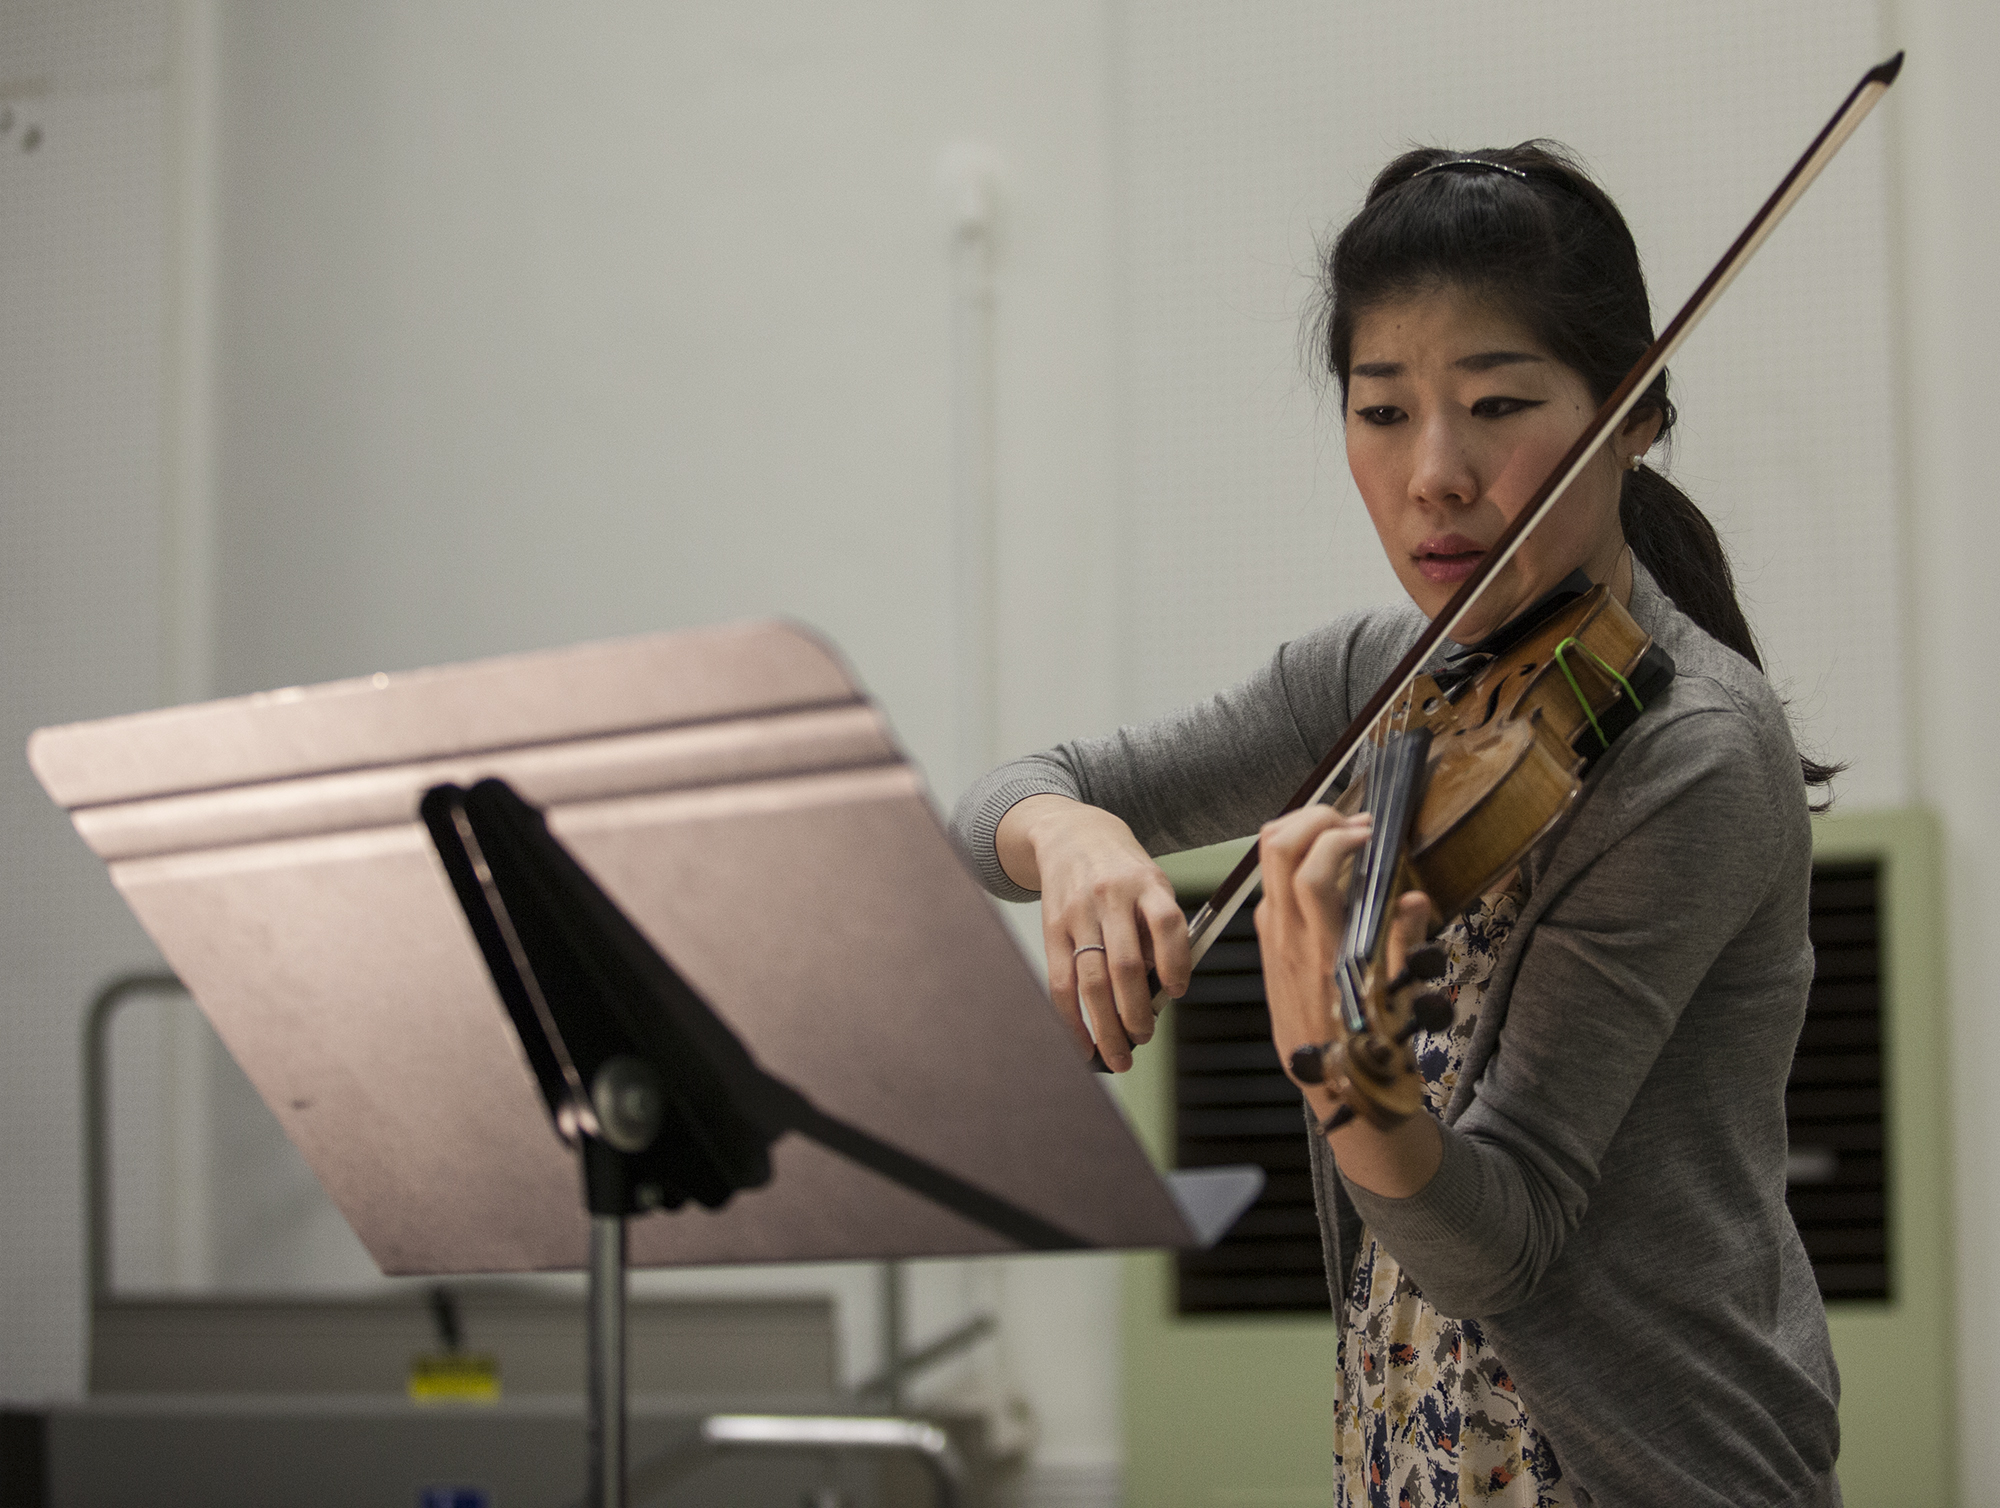 Concert at Pierce hosted violinist Ji Young An